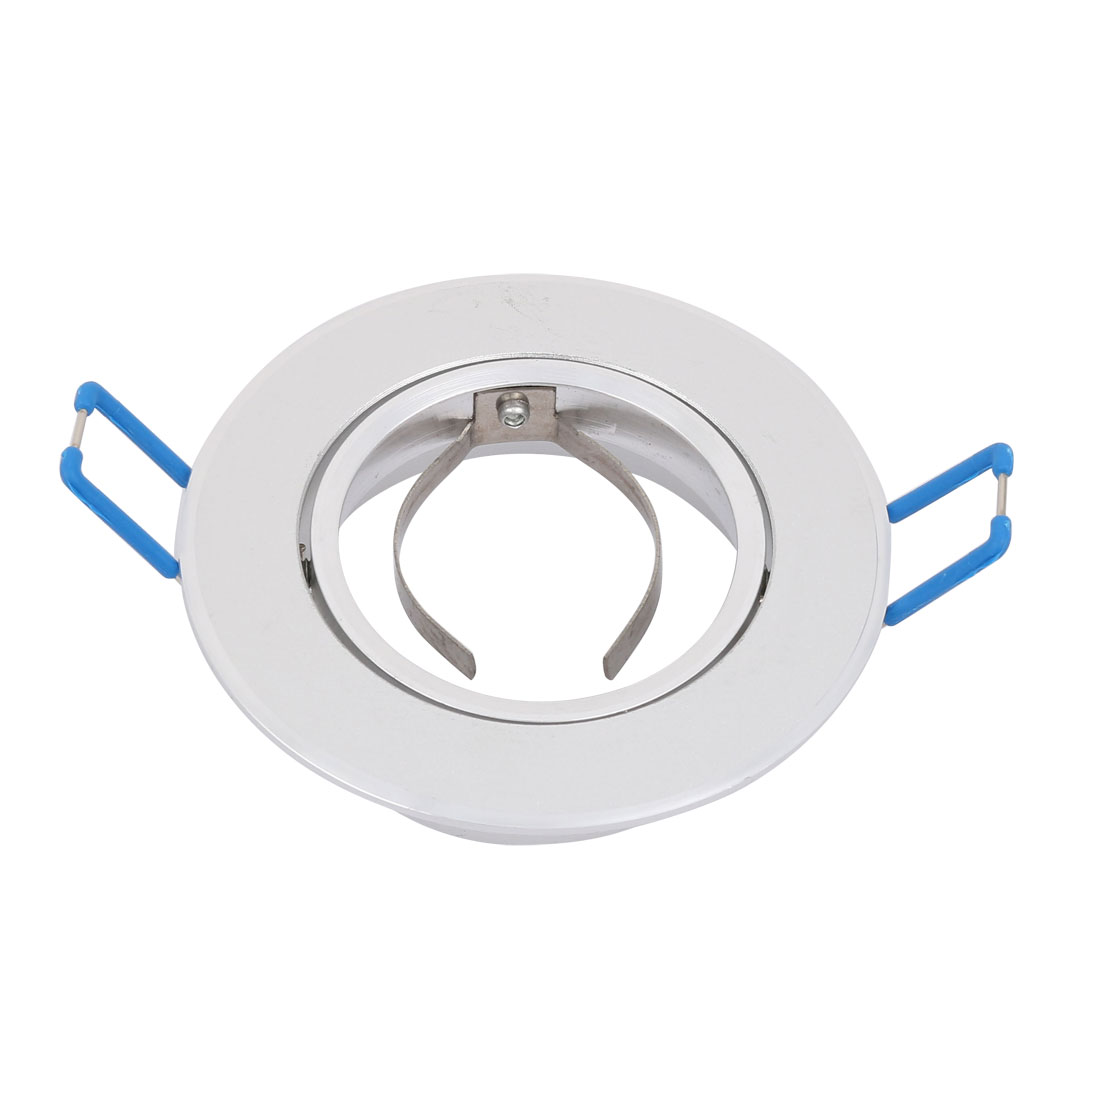 84mm Dia Spotlight Ceiling Light Bracket Downlight Holder Adjustable Sliver Tone